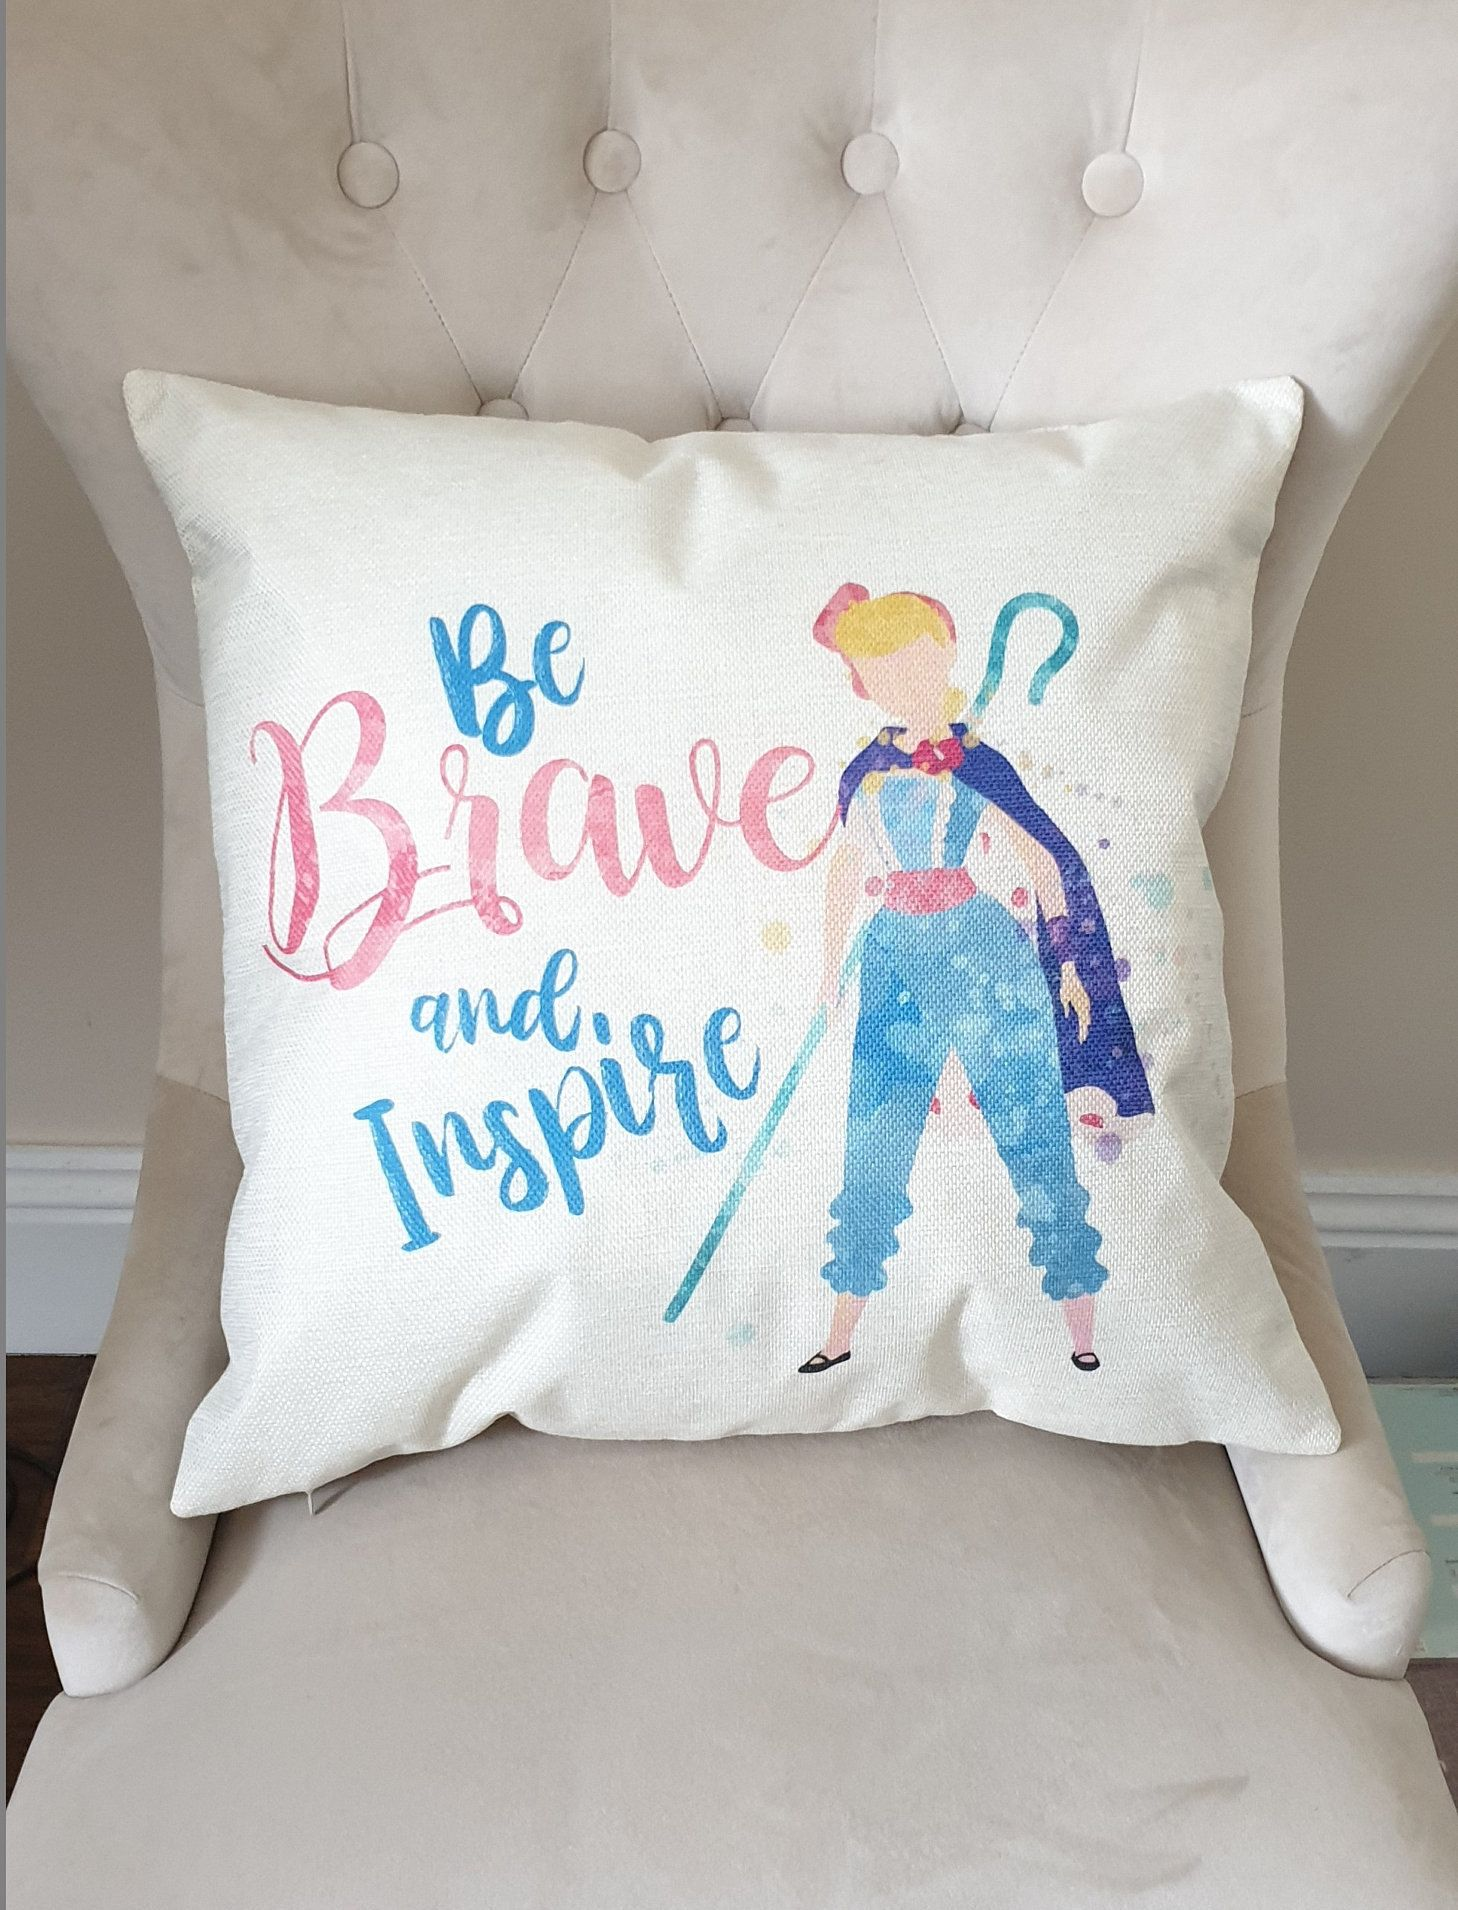 Toy Story cushion covers